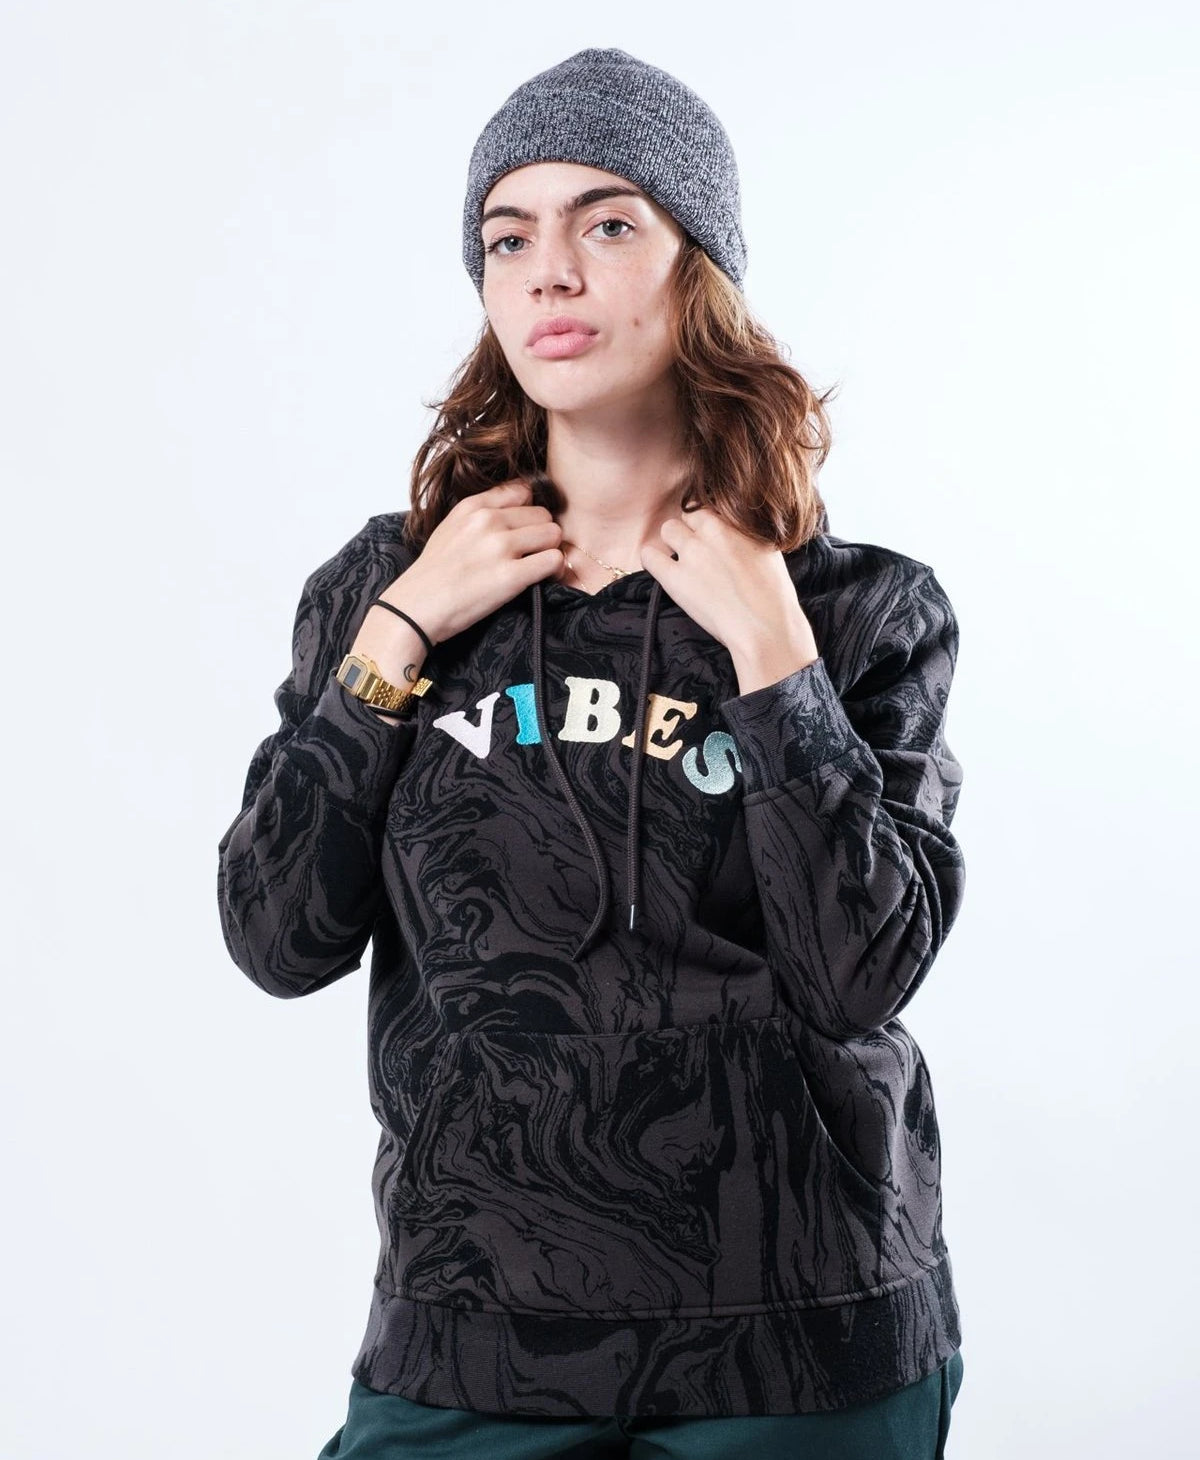 WOMEN'S DUSTY BLACK OIL SLICK VIBES EMBROIDERED HOODIE